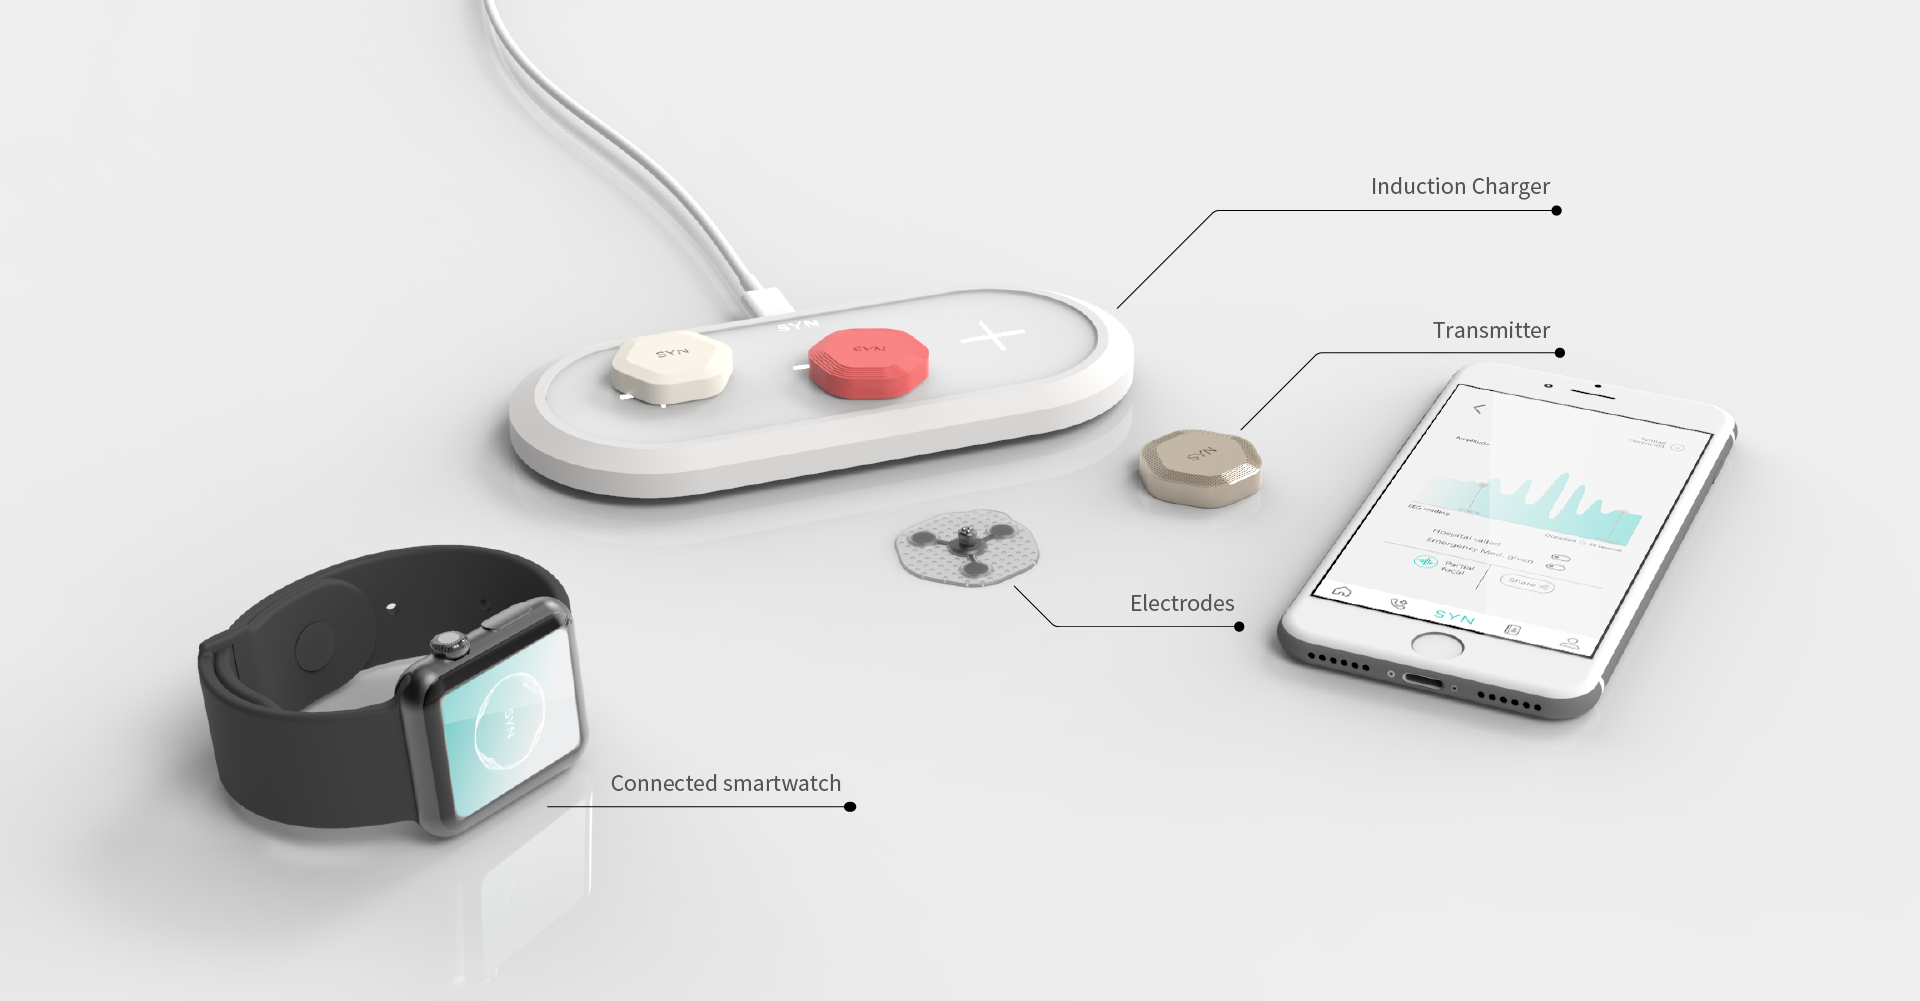 Syn product ecosystem consists of a smart watch, Synpad, Induction charger, and Syn App